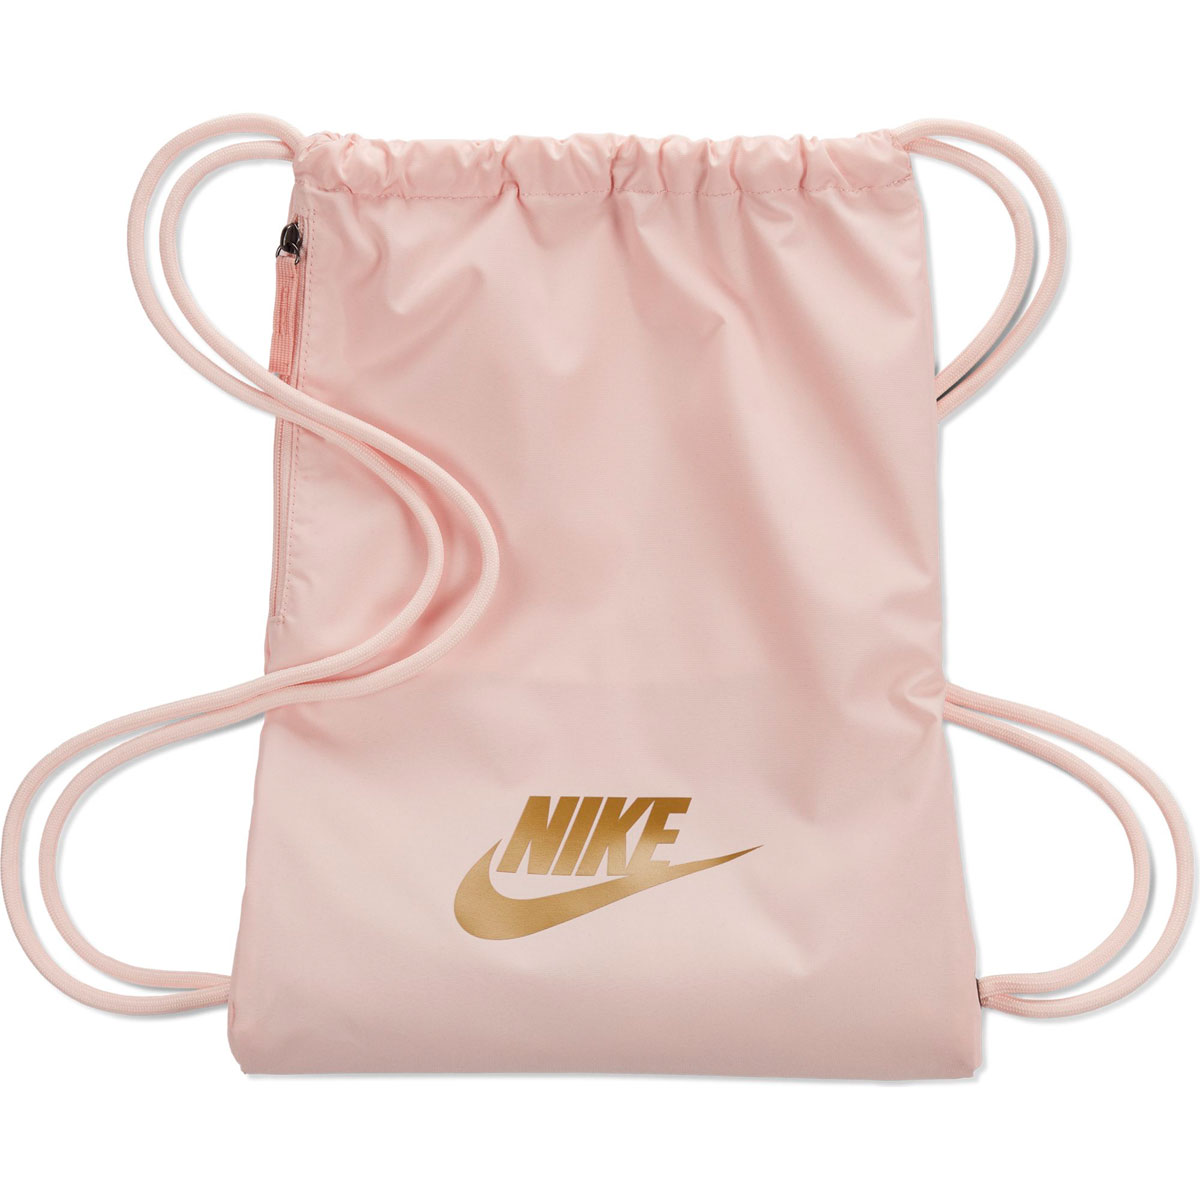 Heritage 2.0 Gymsack, Pink, swatch